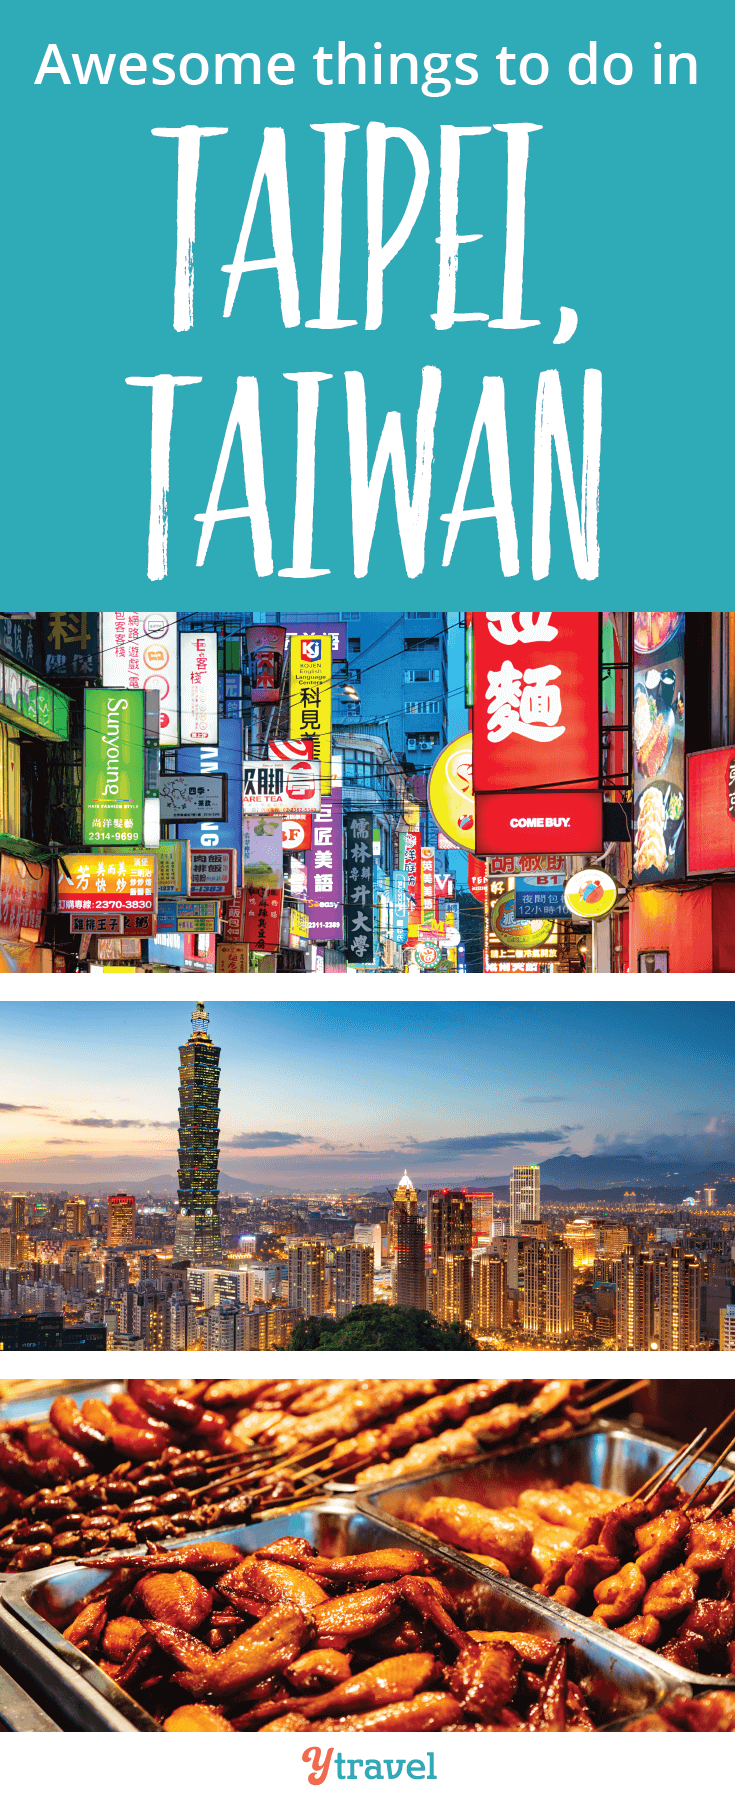 Looking for things to do in Taipei, Taiwan? The capital city is full of beautiful temples, world class restaurants and hospitable people!